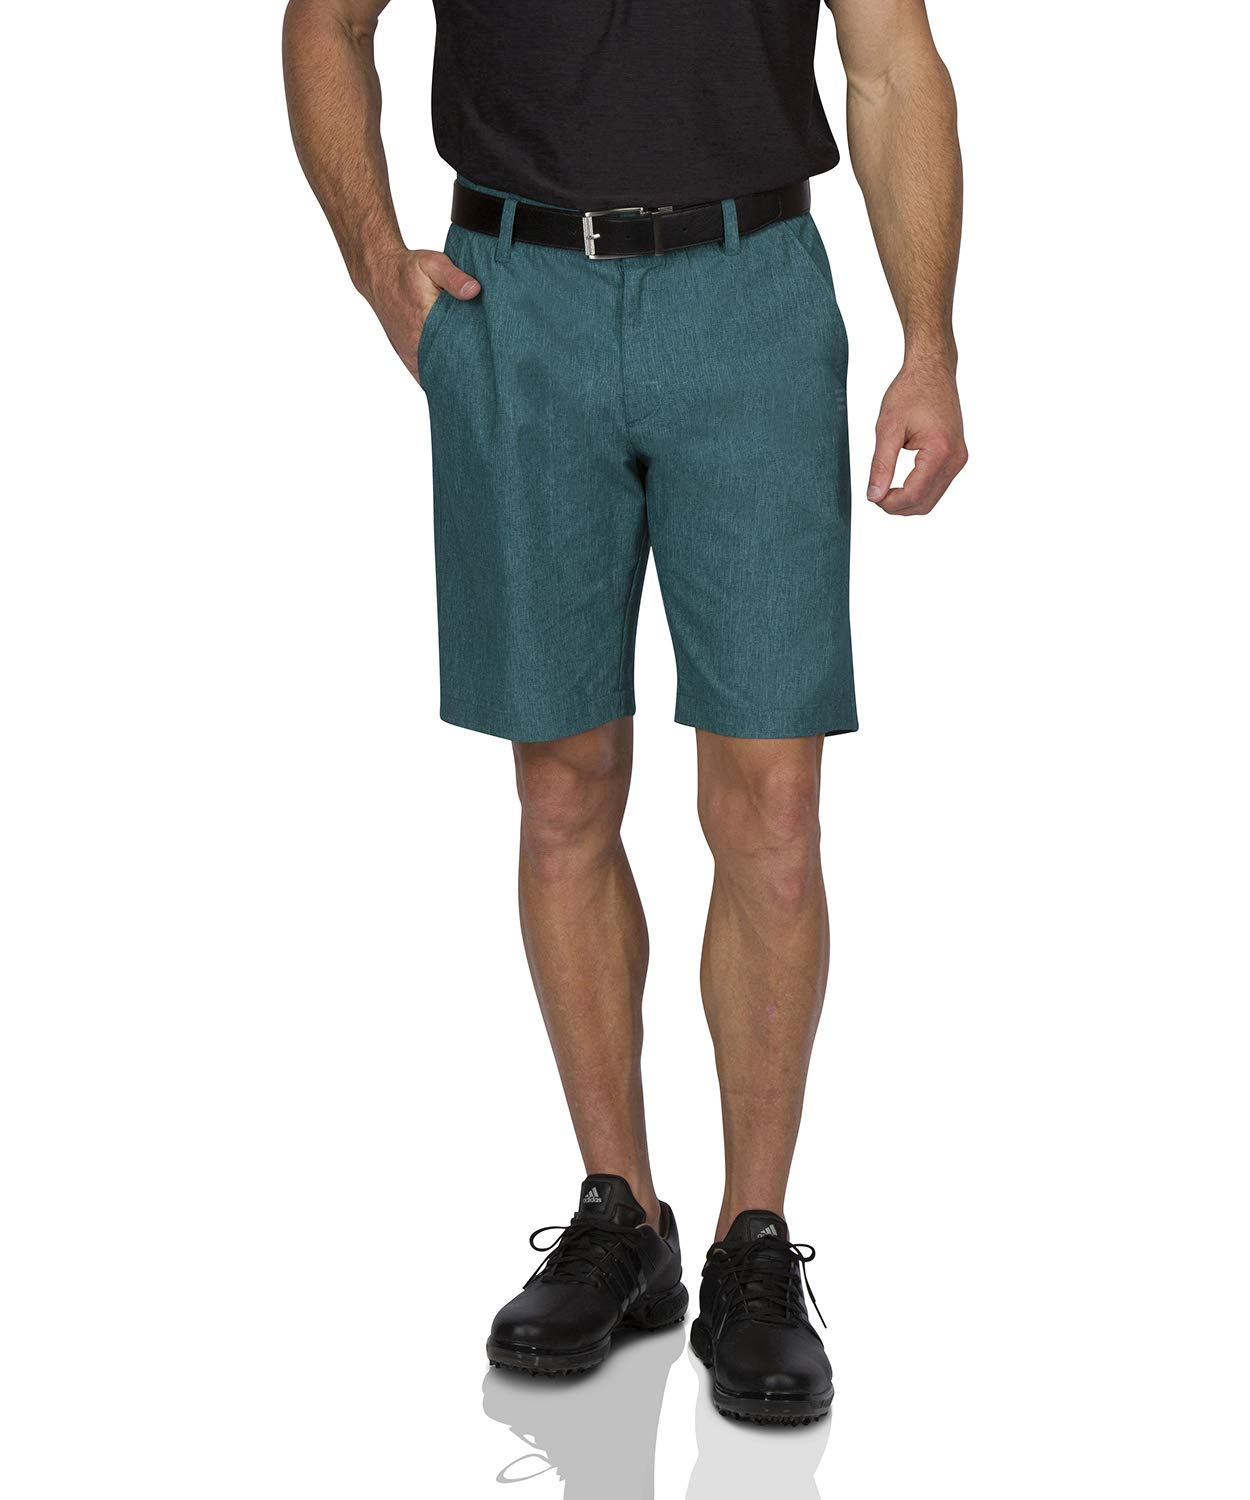 Dry Fit Golf Shorts for Men - Casual Mens Shorts Moisture Wicking - Men's Chino Shorts with Elastic Waistband Deep Teal by Three Sixty Six